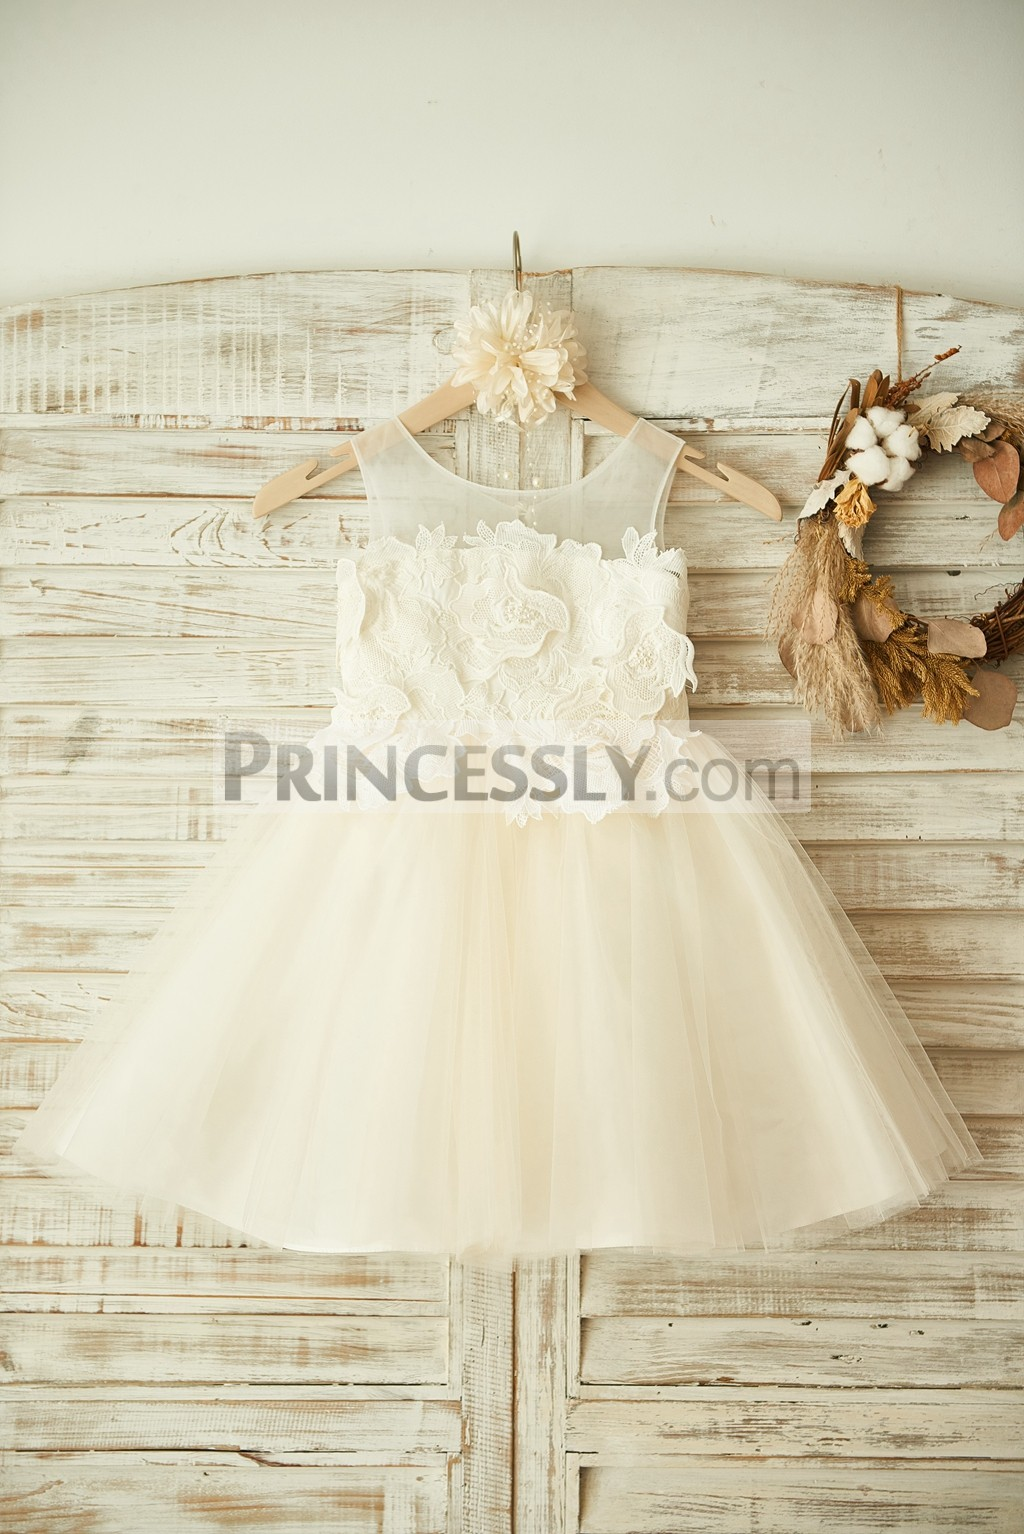 Sheer Neck Ivory Cotton Lace Champagne Tulle Flower Girl